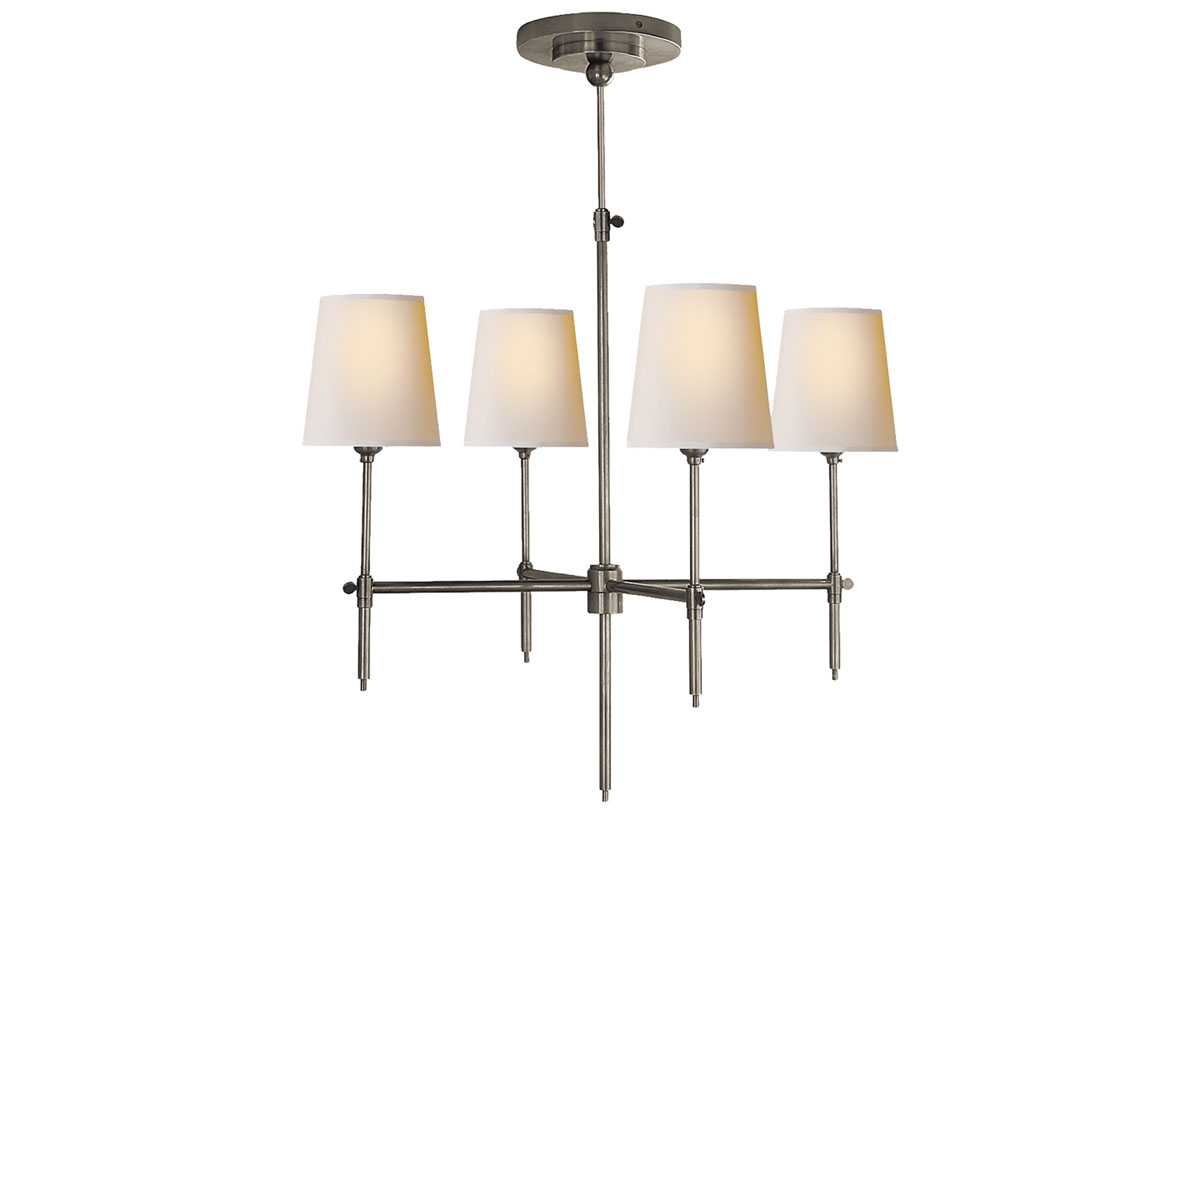 visual comfort small bryant chandeliers chandeliers neenas lighting. Black Bedroom Furniture Sets. Home Design Ideas